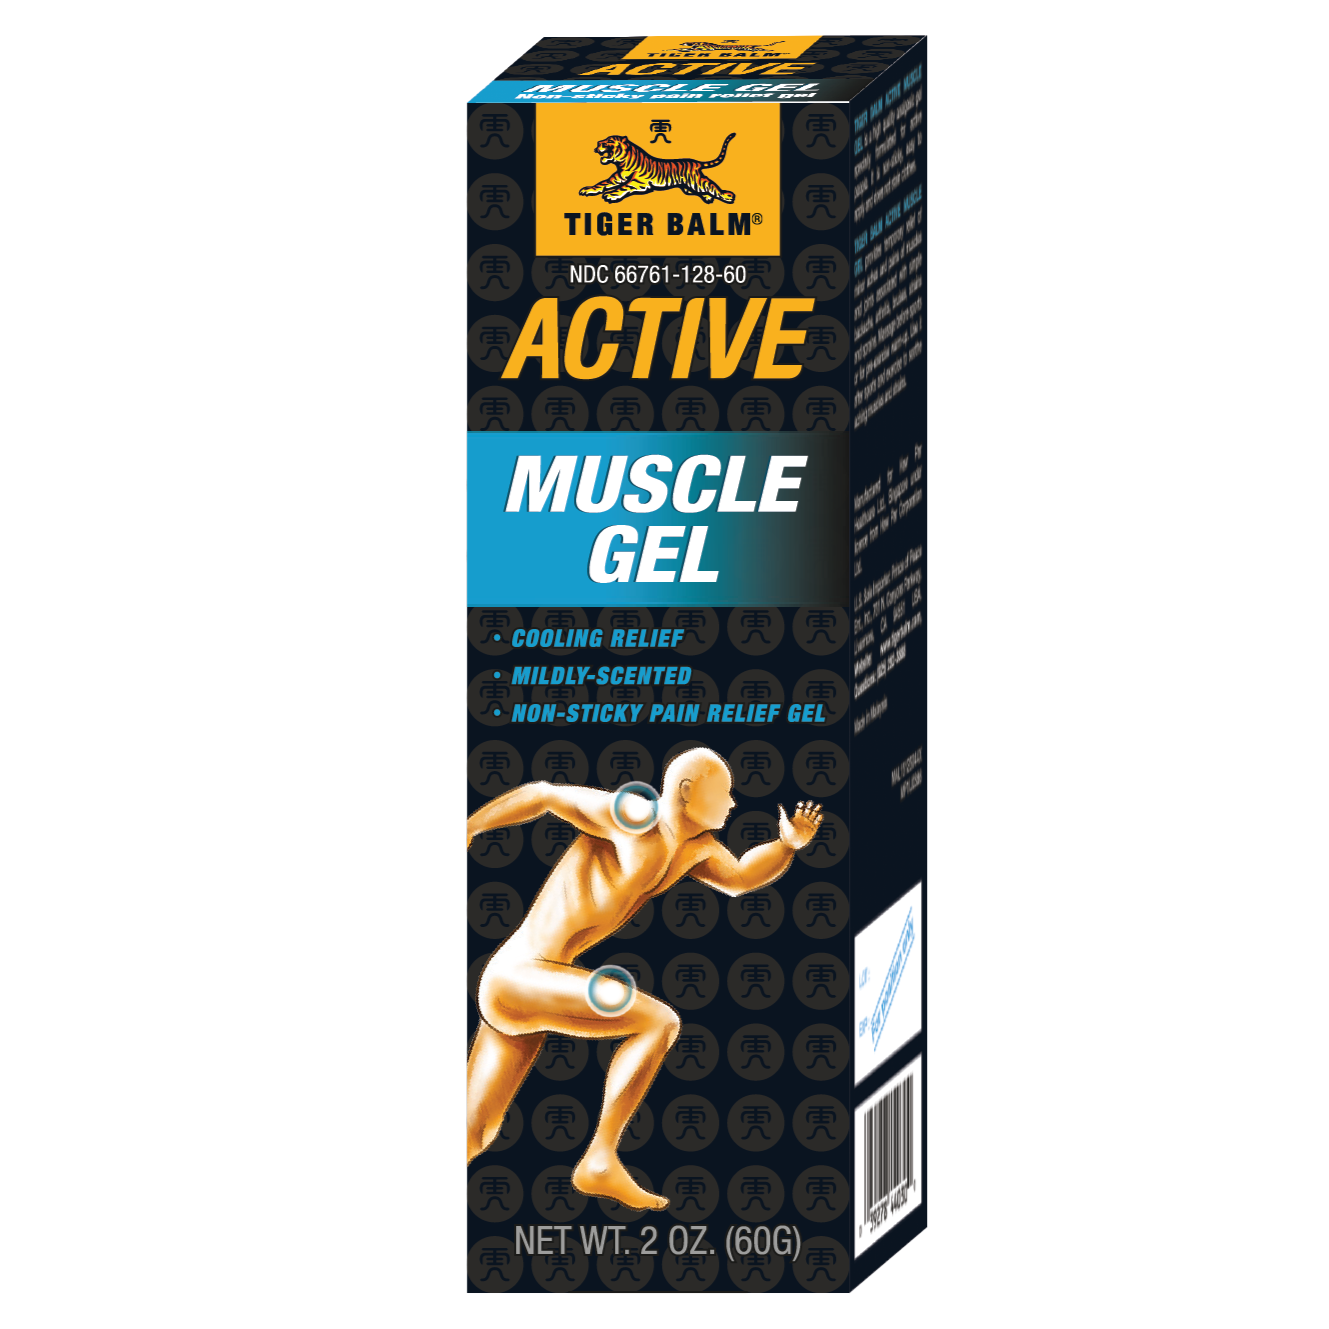 Tiger Balm Active Muscle Gel 2 Oz (60 g)